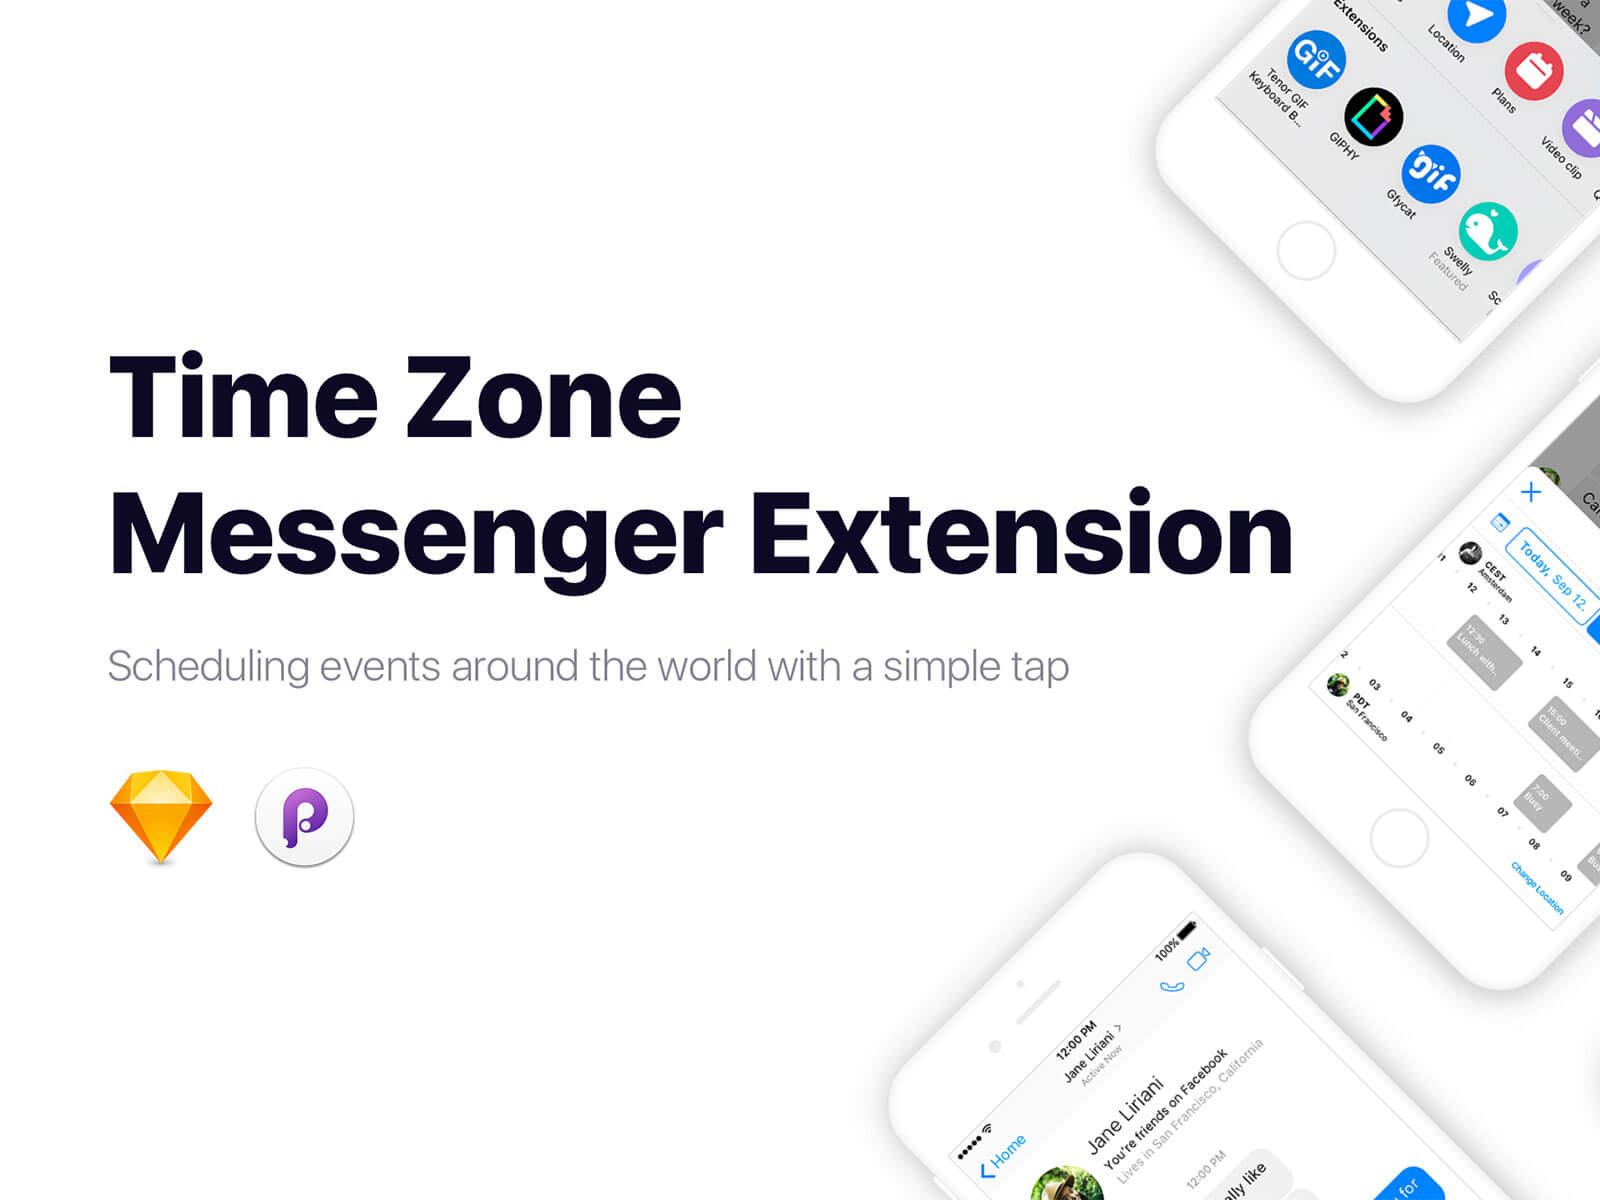 Time Zone Messenger Extension cover image